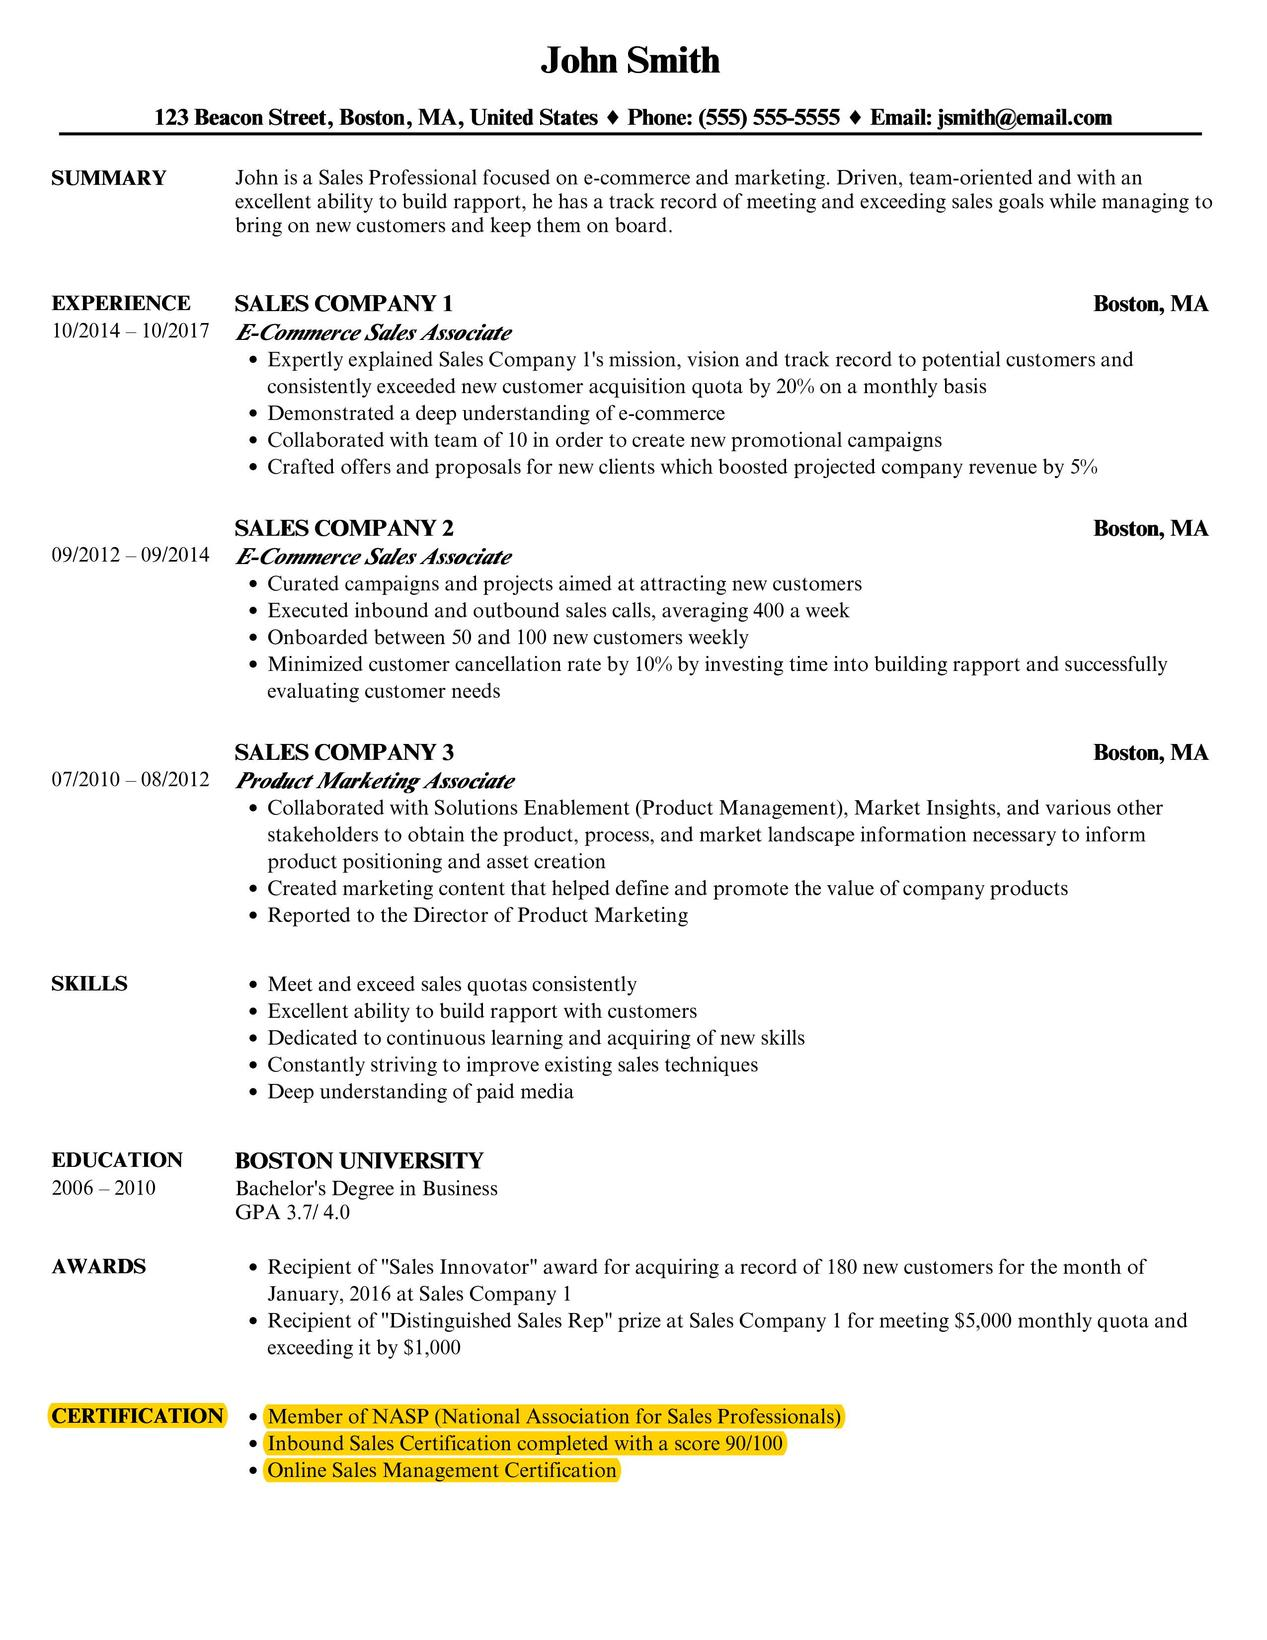 Resume Example. Add Your Certification Right After Your Education Section.  You Can Also Move It Down Below The SKILLS Section If Your Skills Are More  ...